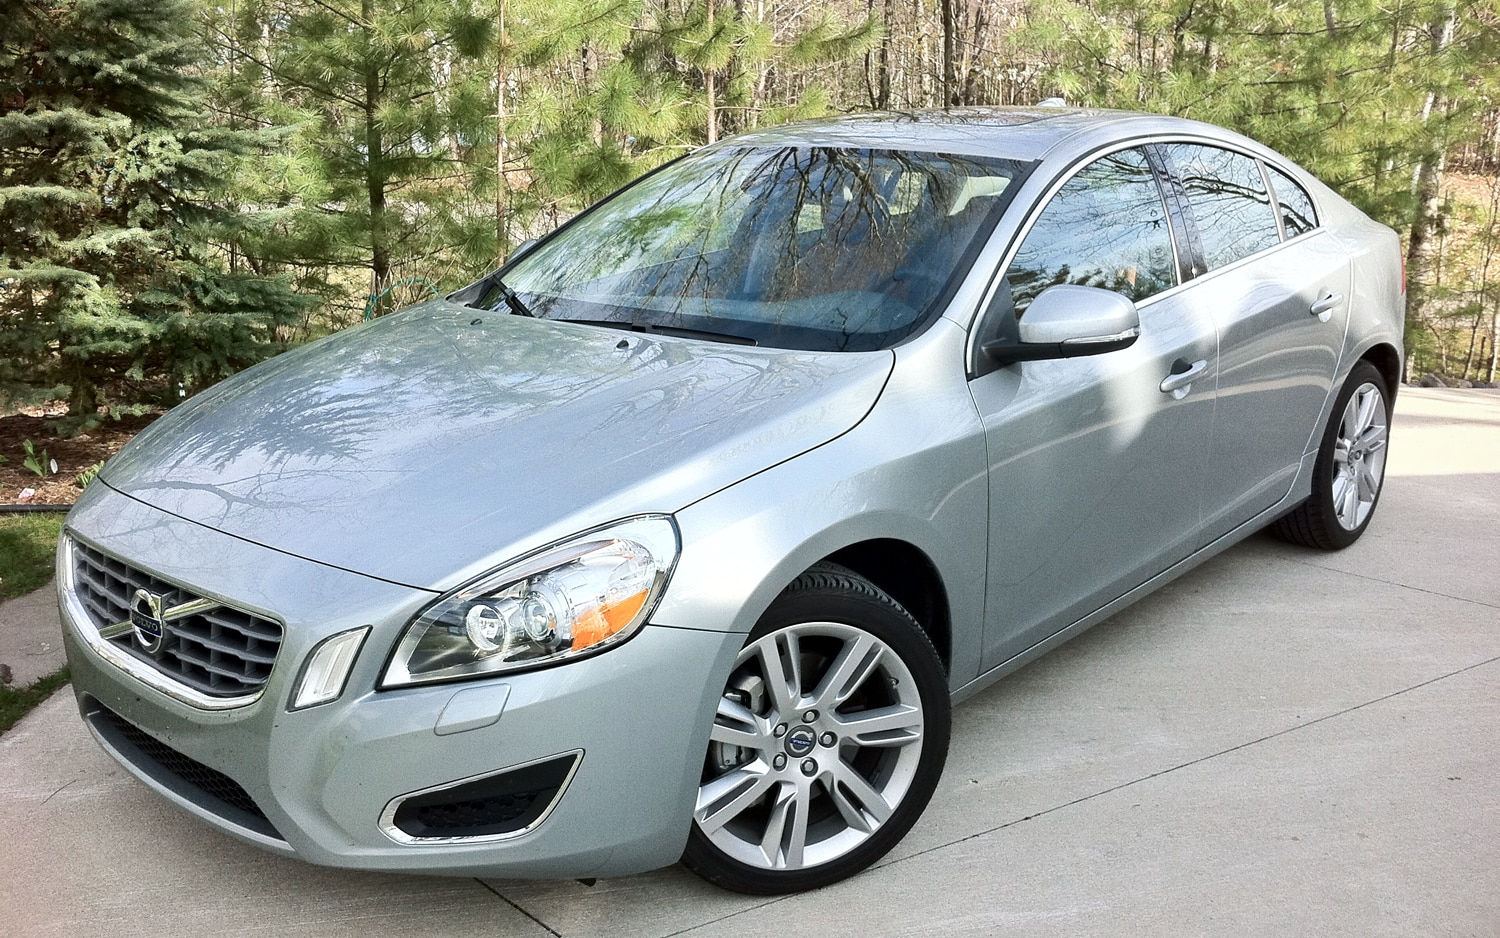 2012 Volvo S60 T6 AWD Front Left Side View1